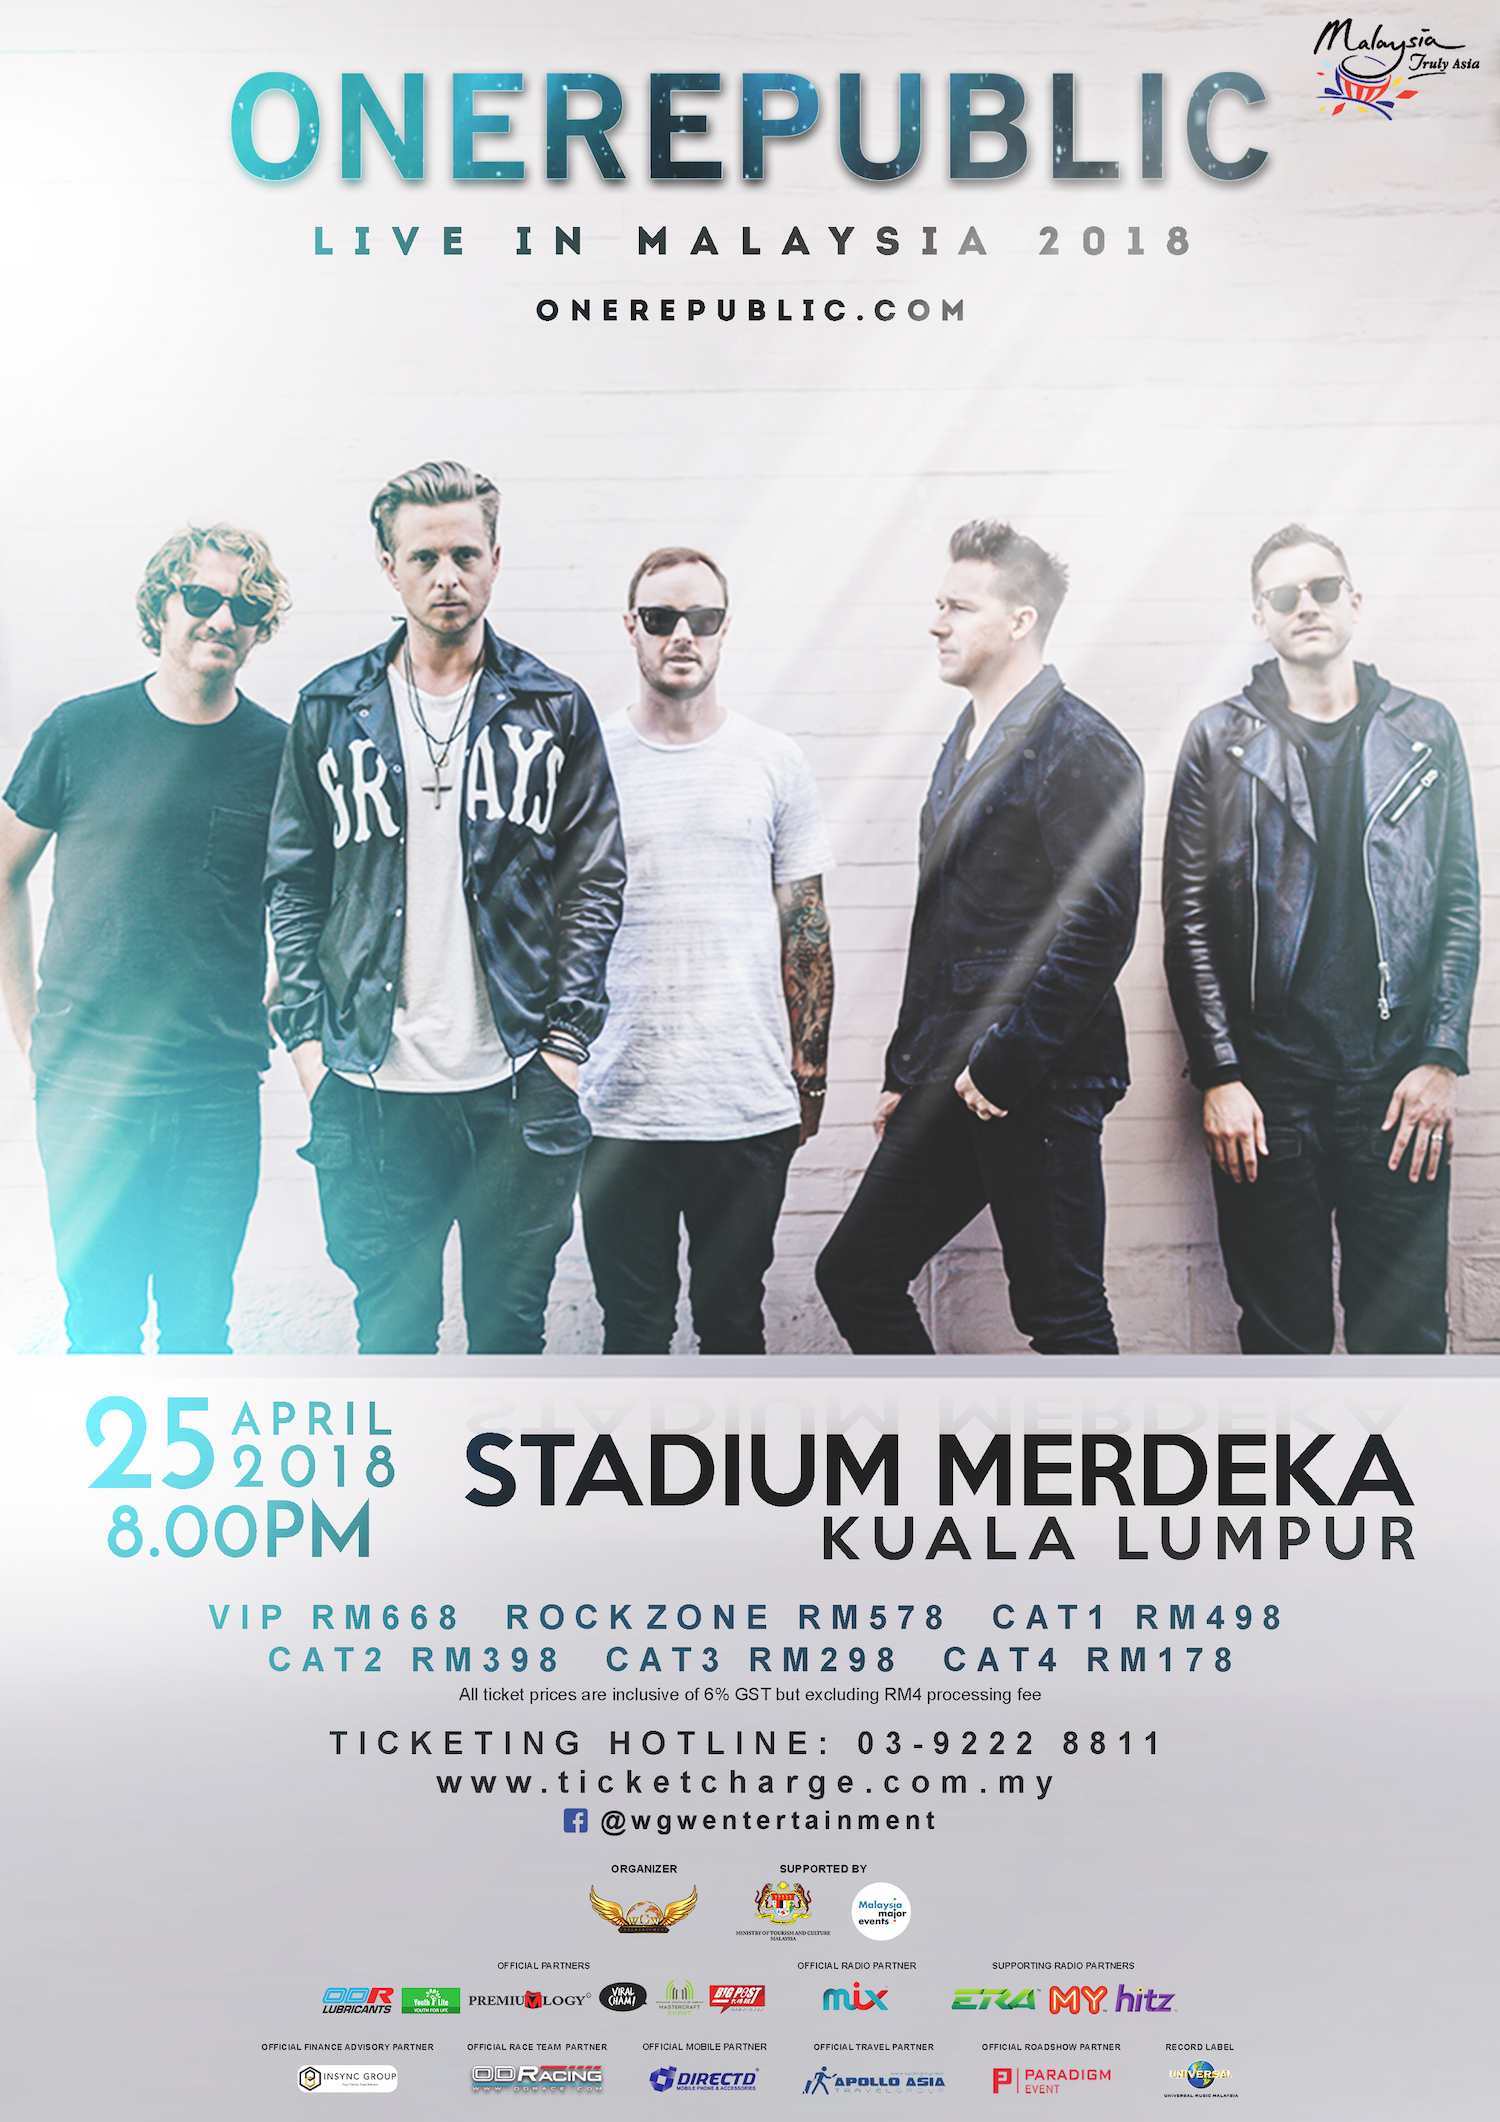 ONEREPUBLIC Live in Malaysia, April 25th 2018